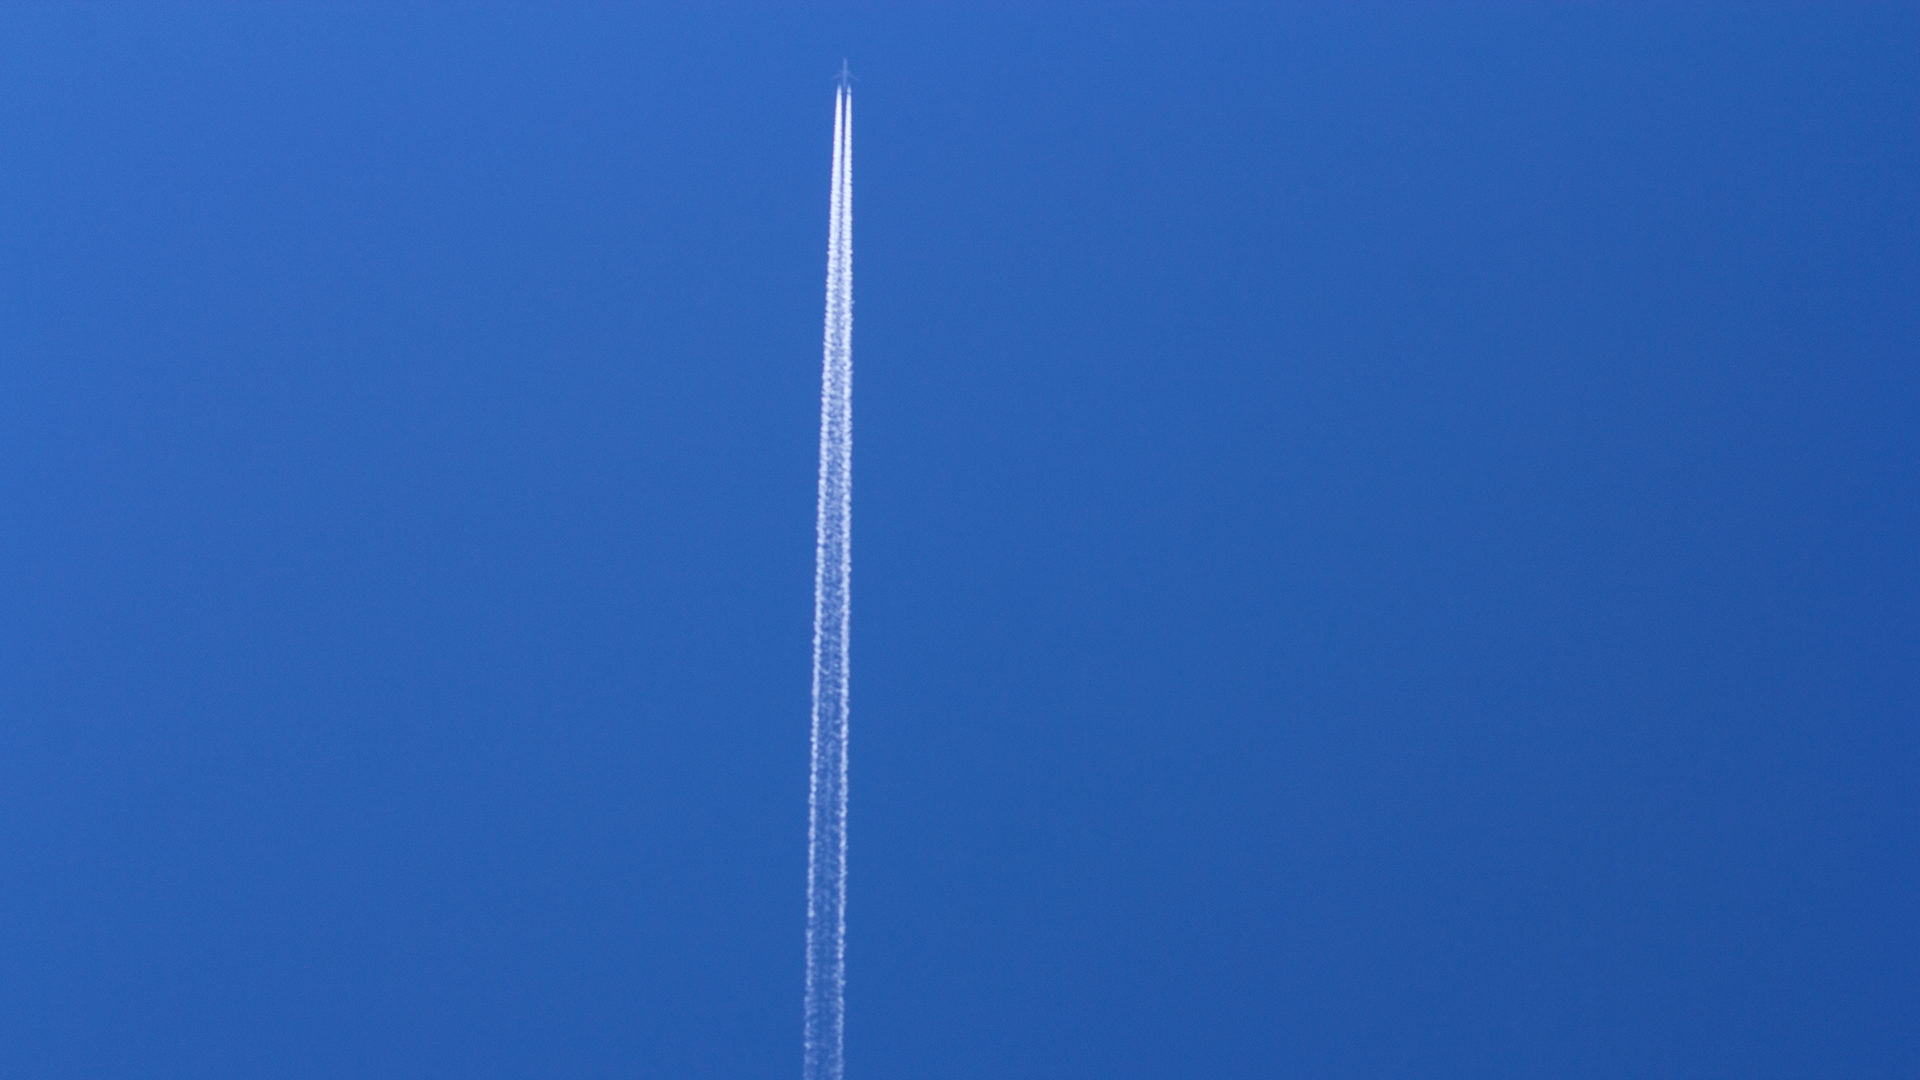 Airplane making white streaks on blue sky